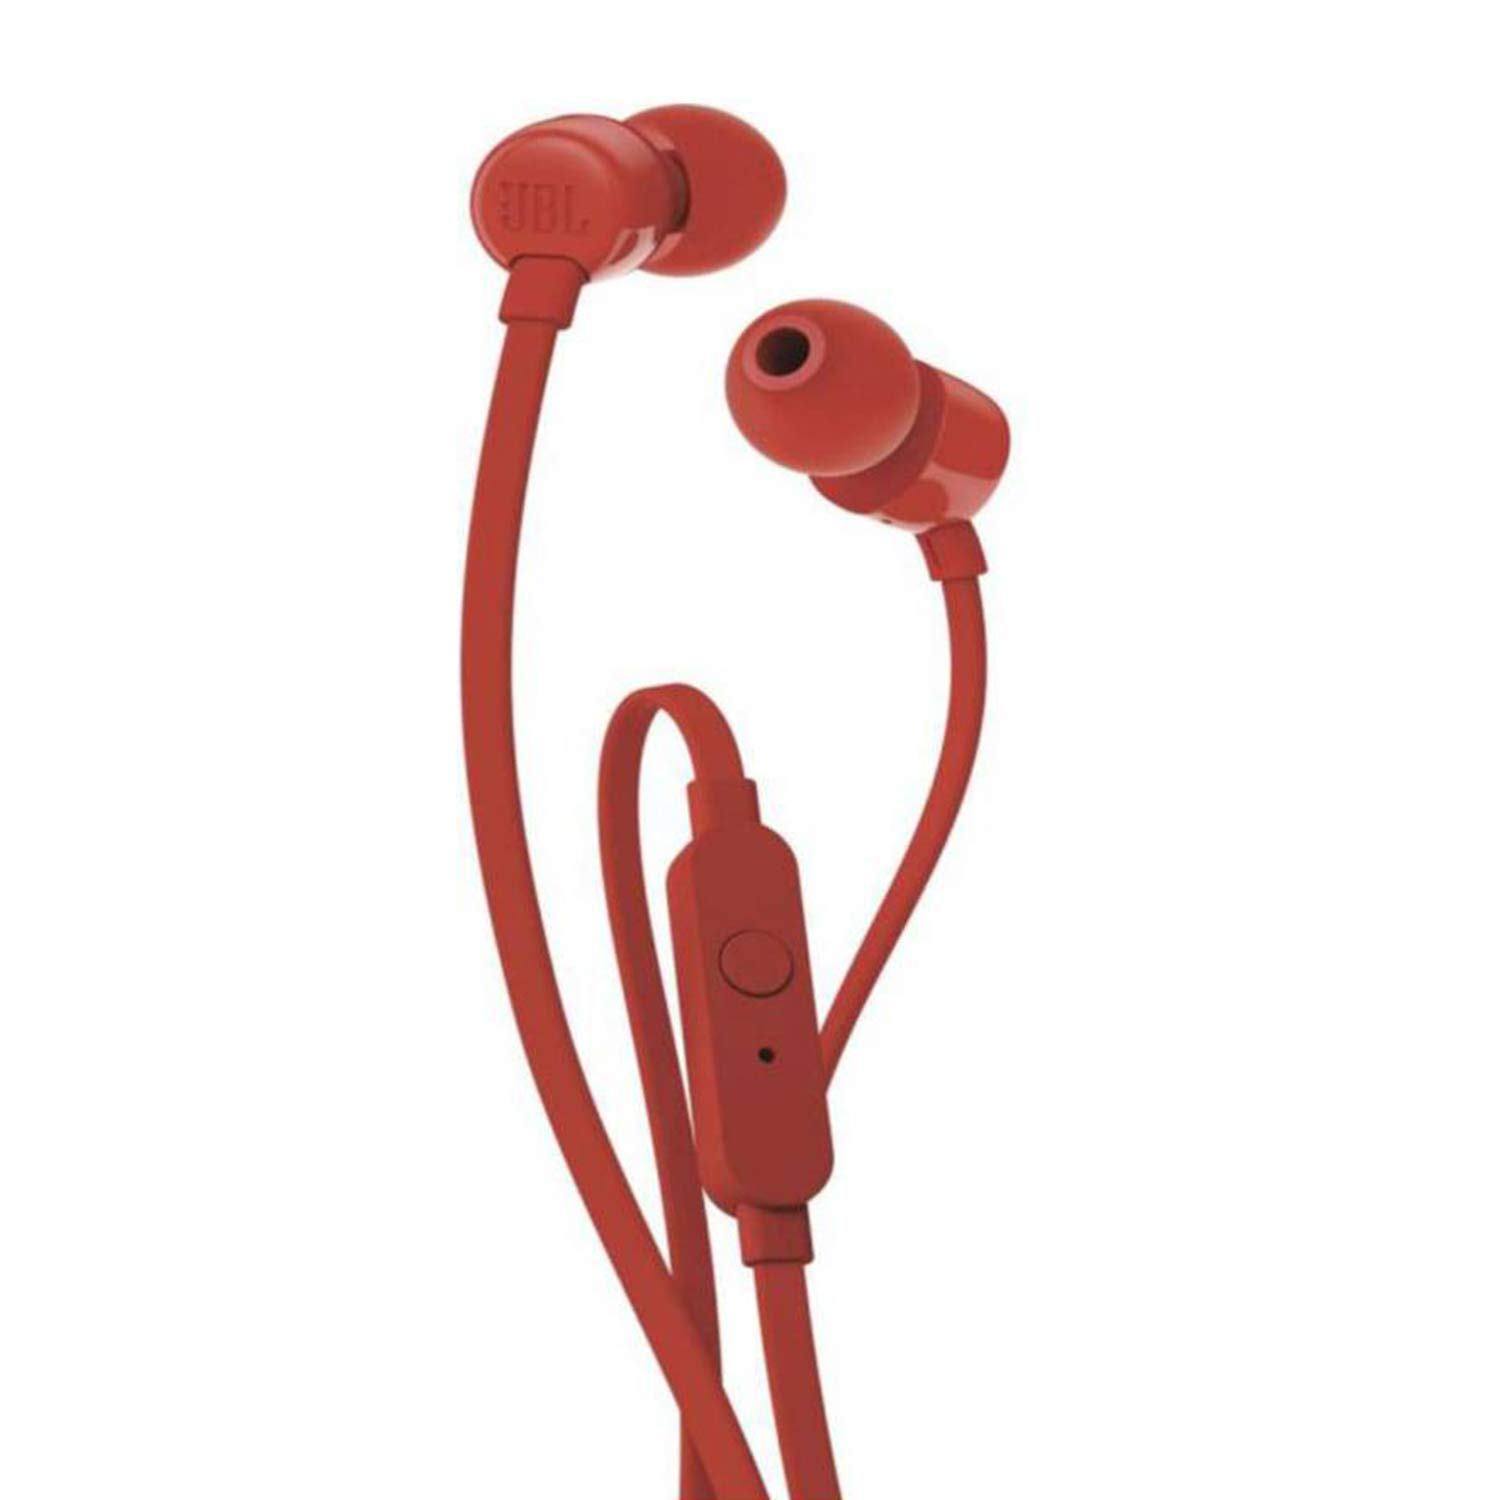 b6d3dbb53fd JBL T110 in-Ear Headphones with Mic (Red): Buy JBL T110 in-Ear Headphones  with Mic (Red) Online at Low Price in India - Amazon.in